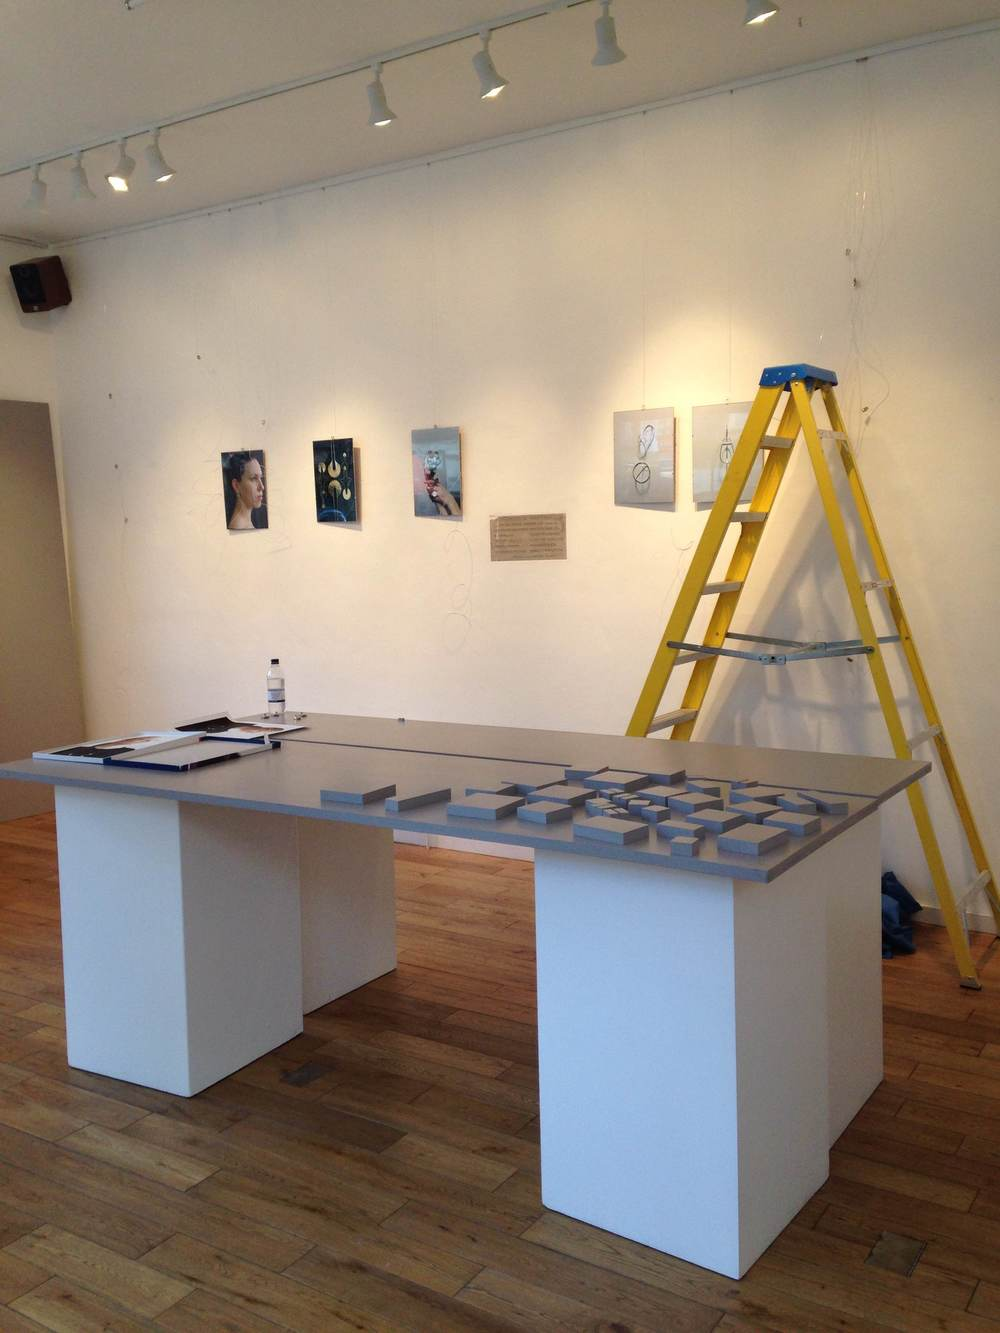 Slowly, bit by bit the exhibition layout is taking shape